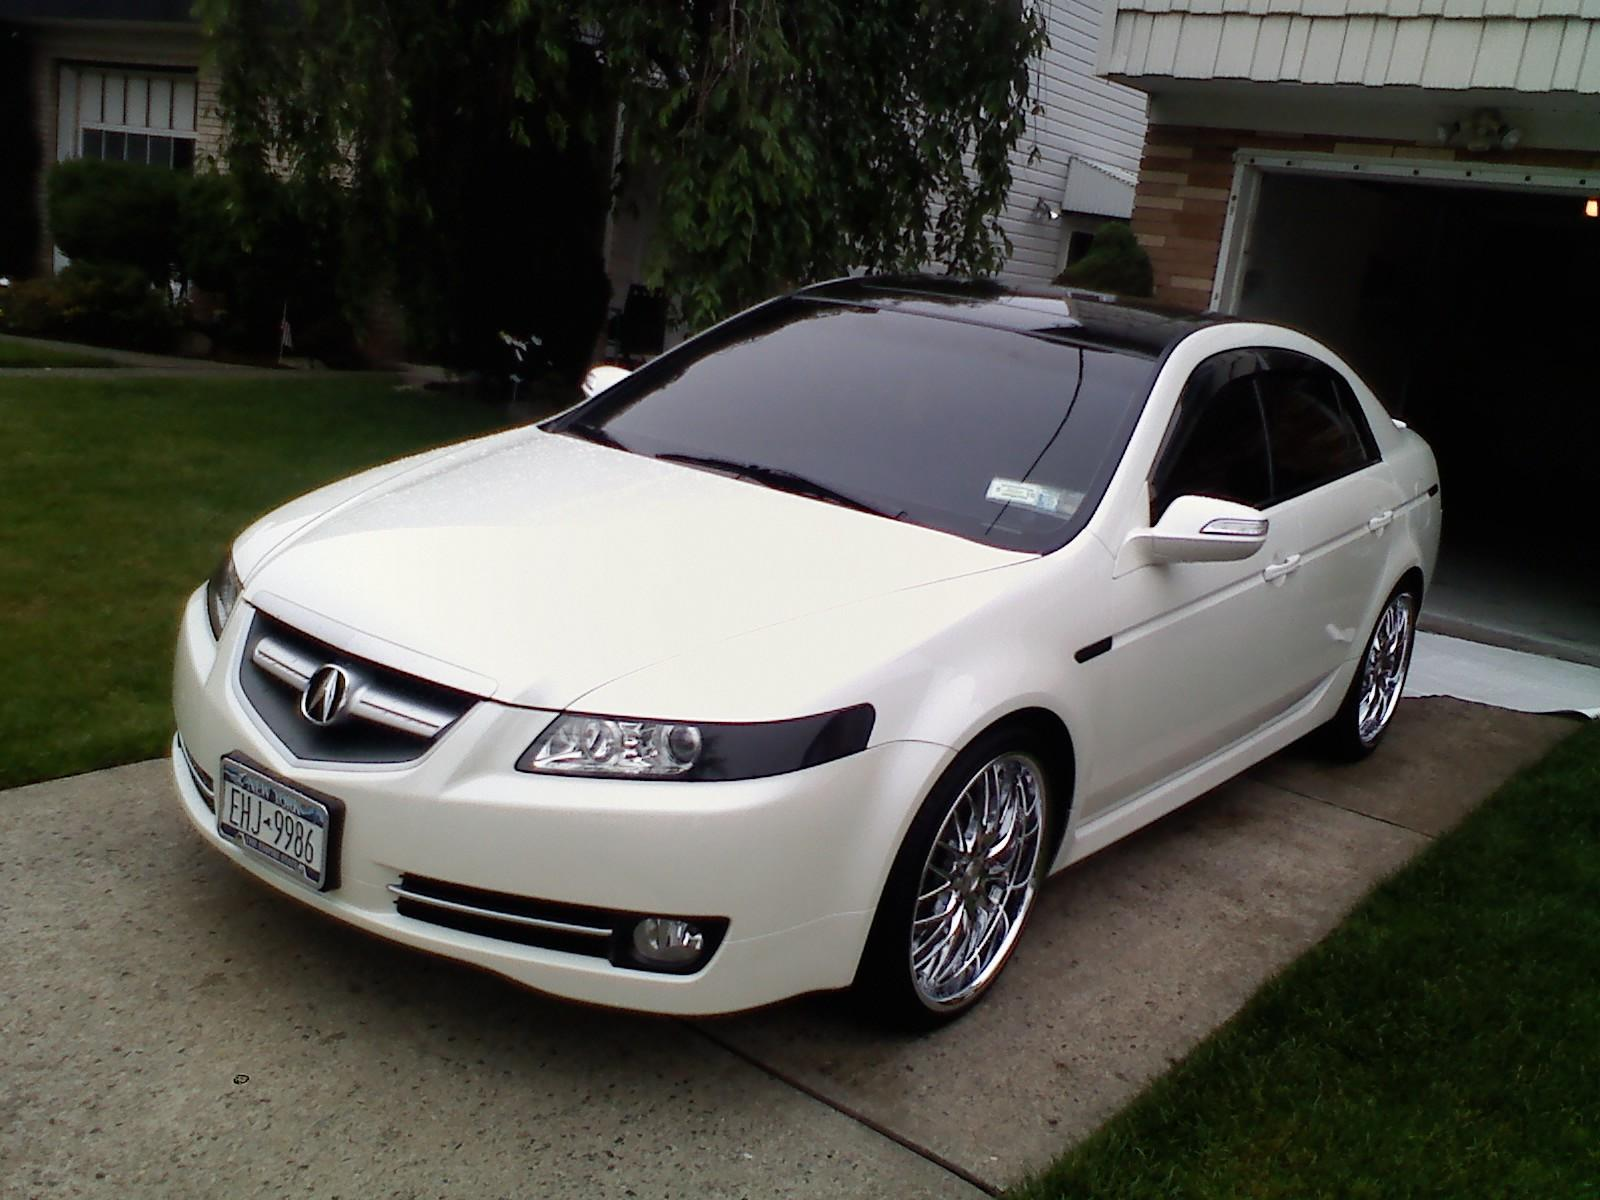 tl21ceayss 2008 acura tl specs photos modification info at cardomain